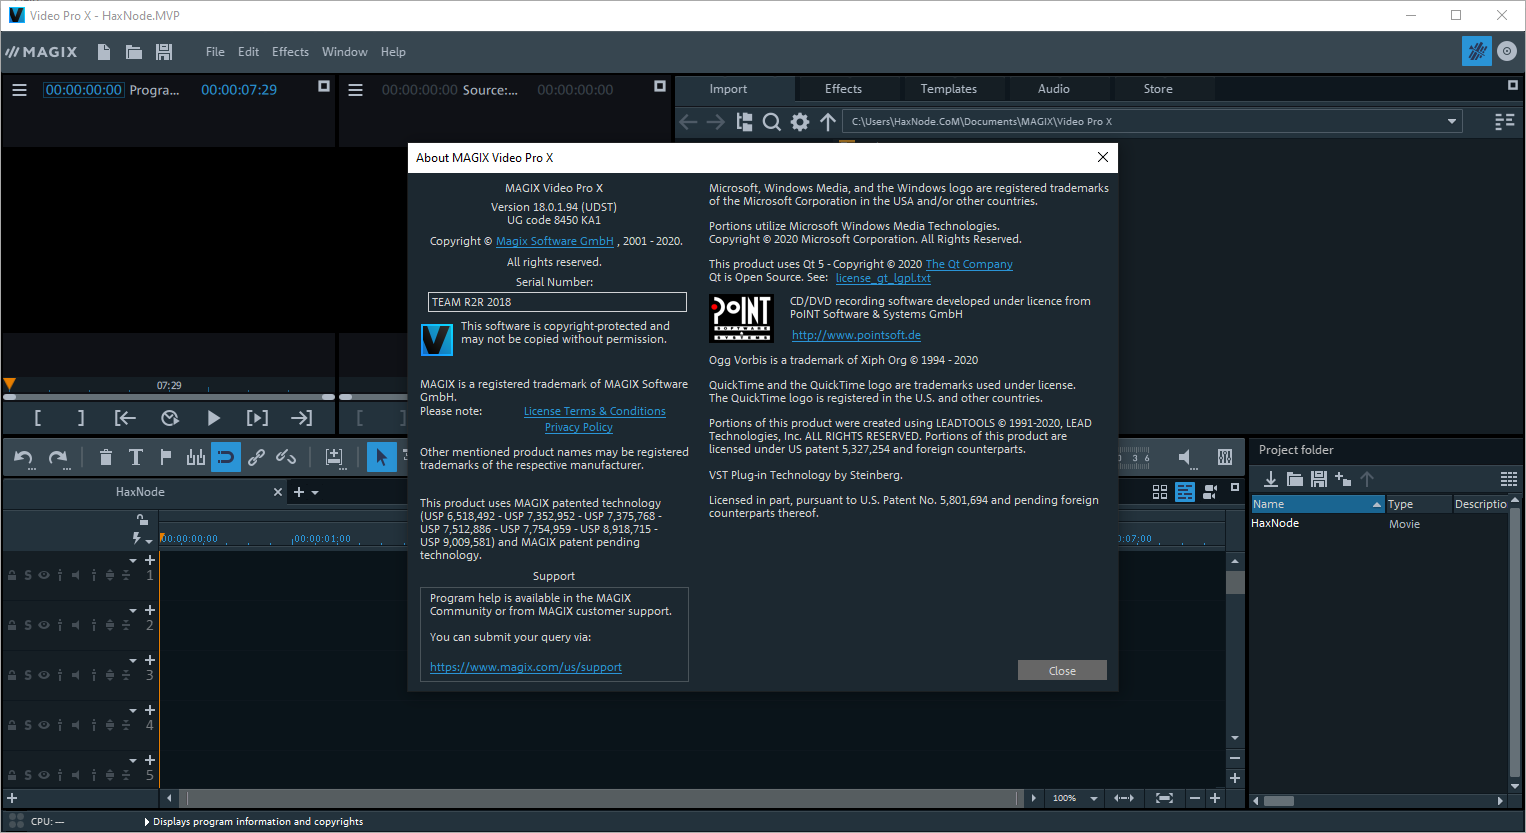 magixvideoprox18.0.1.94